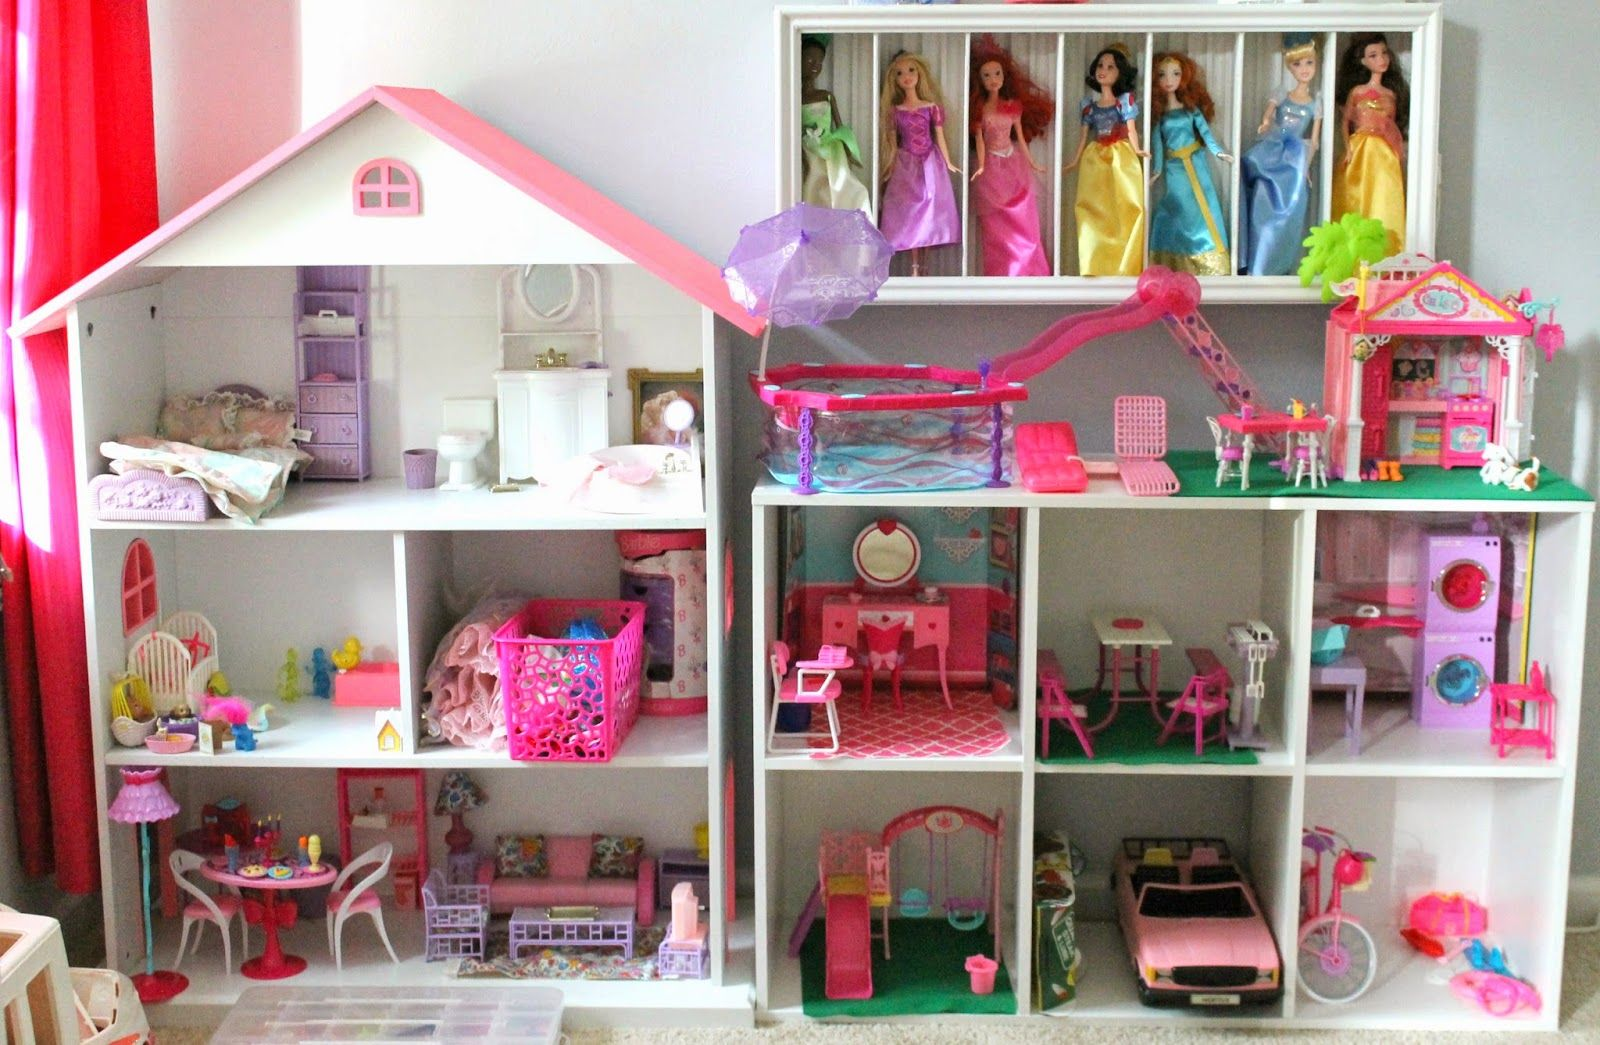 Wondrous Diy Barbie House Using A Bookshelf And Cube Shelf From Download Free Architecture Designs Rallybritishbridgeorg